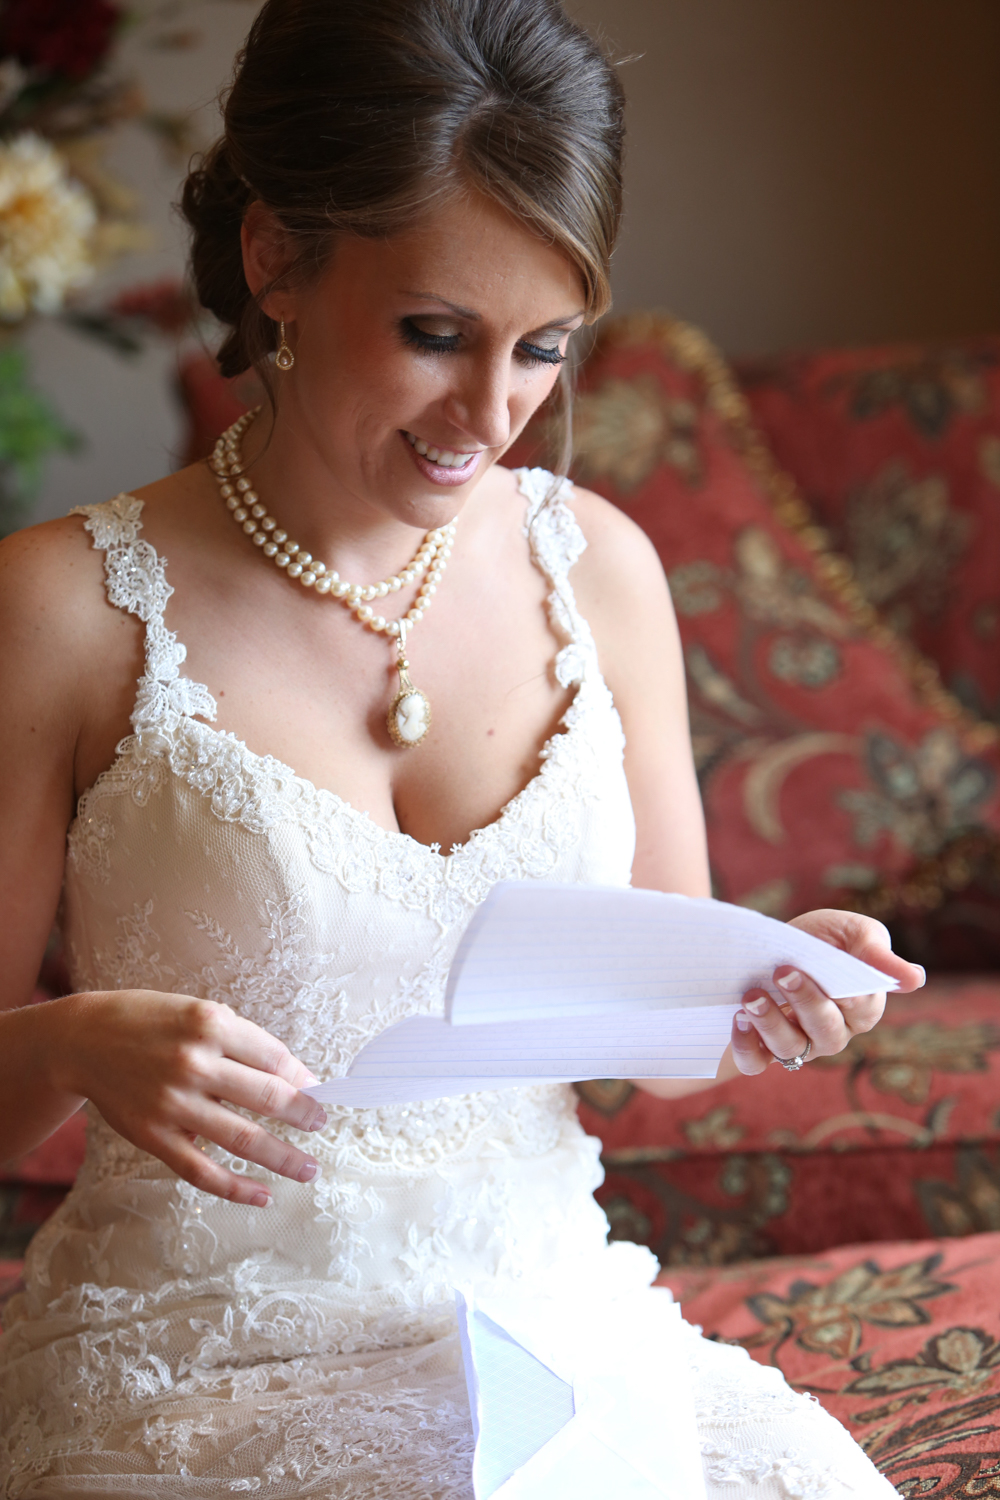 BridalPulse - Sweet Home Alabama Farm Wedding By Rent My Wedding | bride reading note from groom